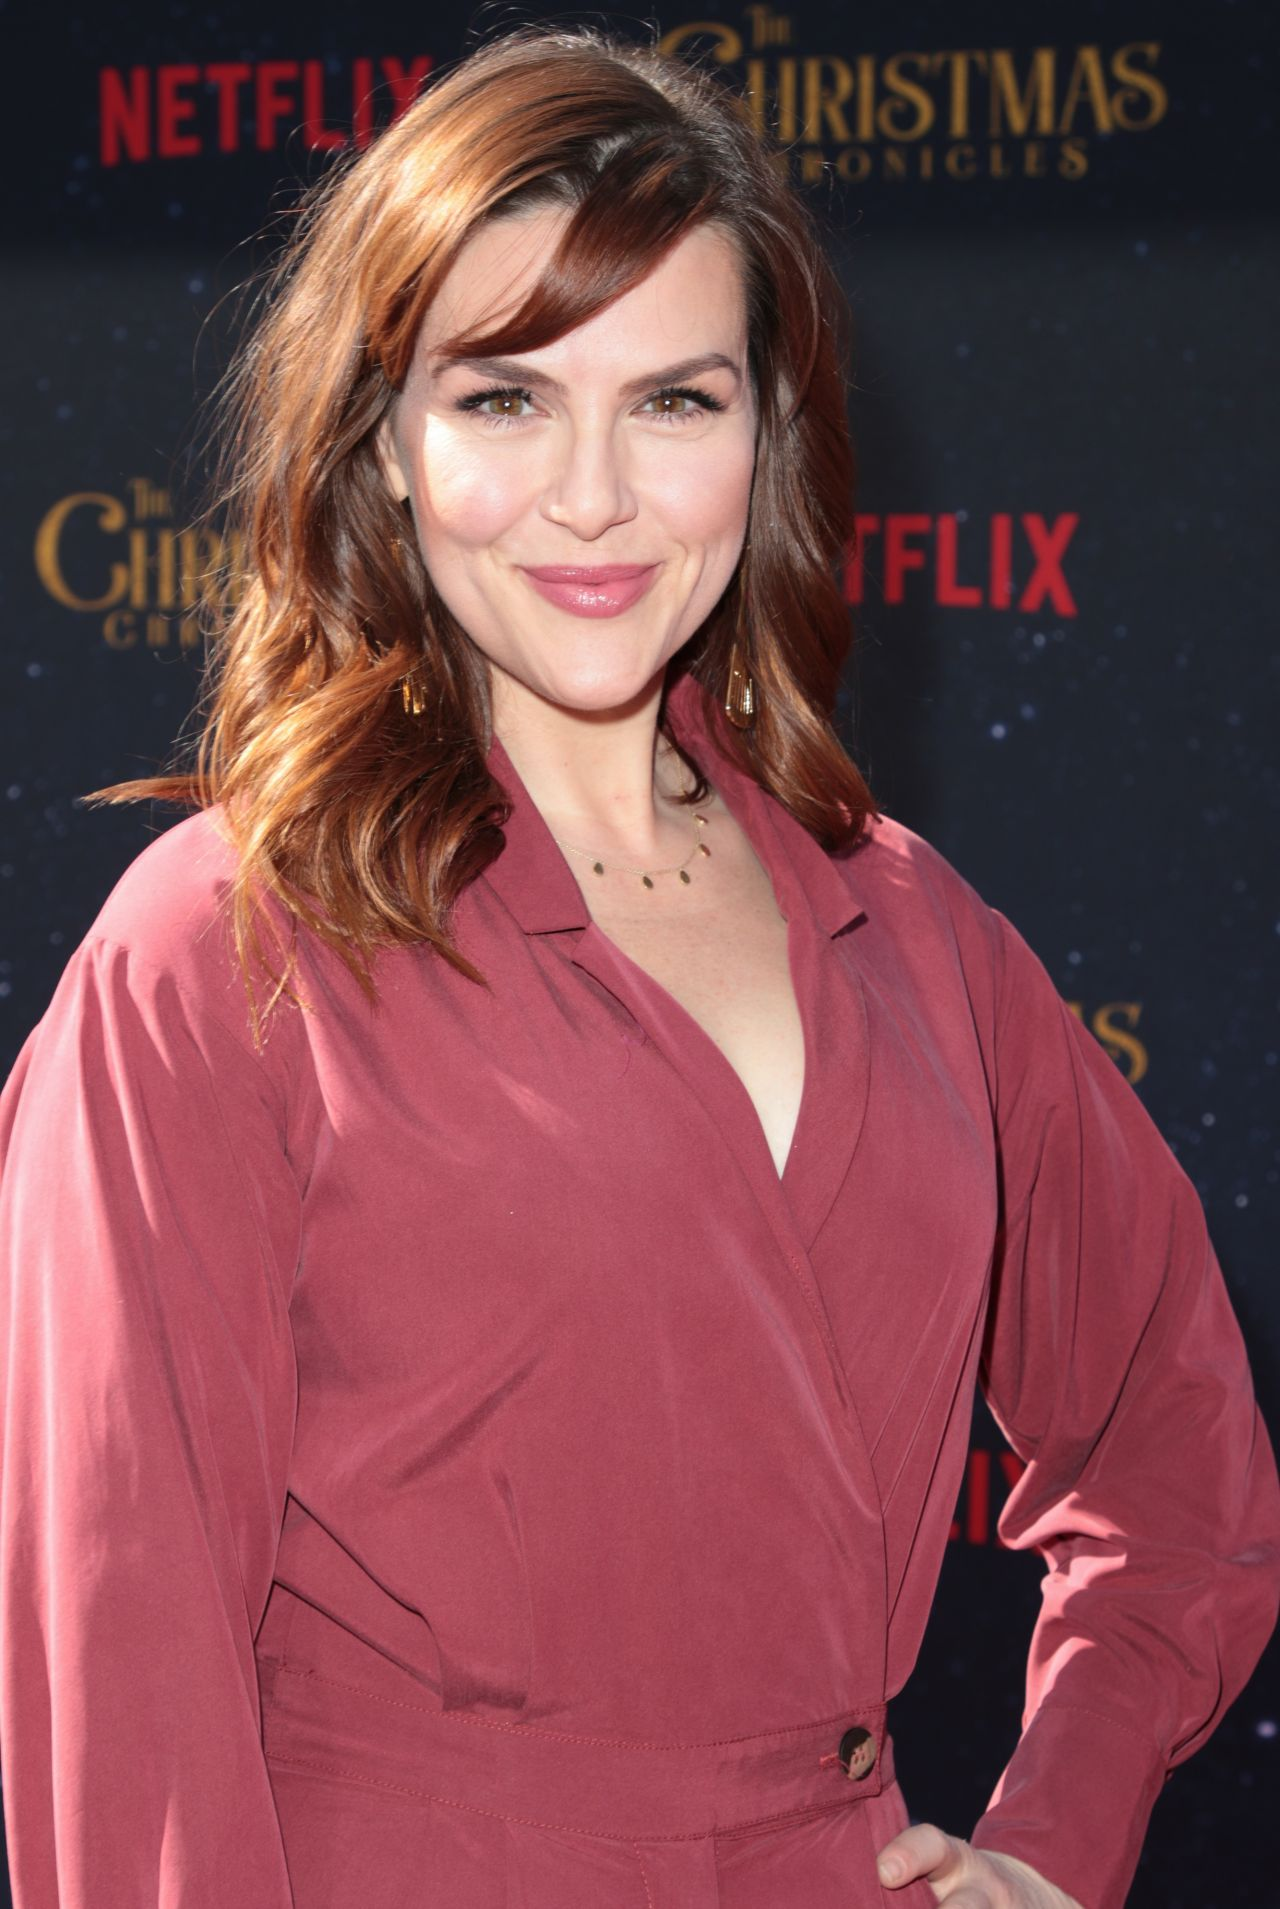 A Christmas Chronicles.Sara Rue The Christmas Chronicles Premiere In La